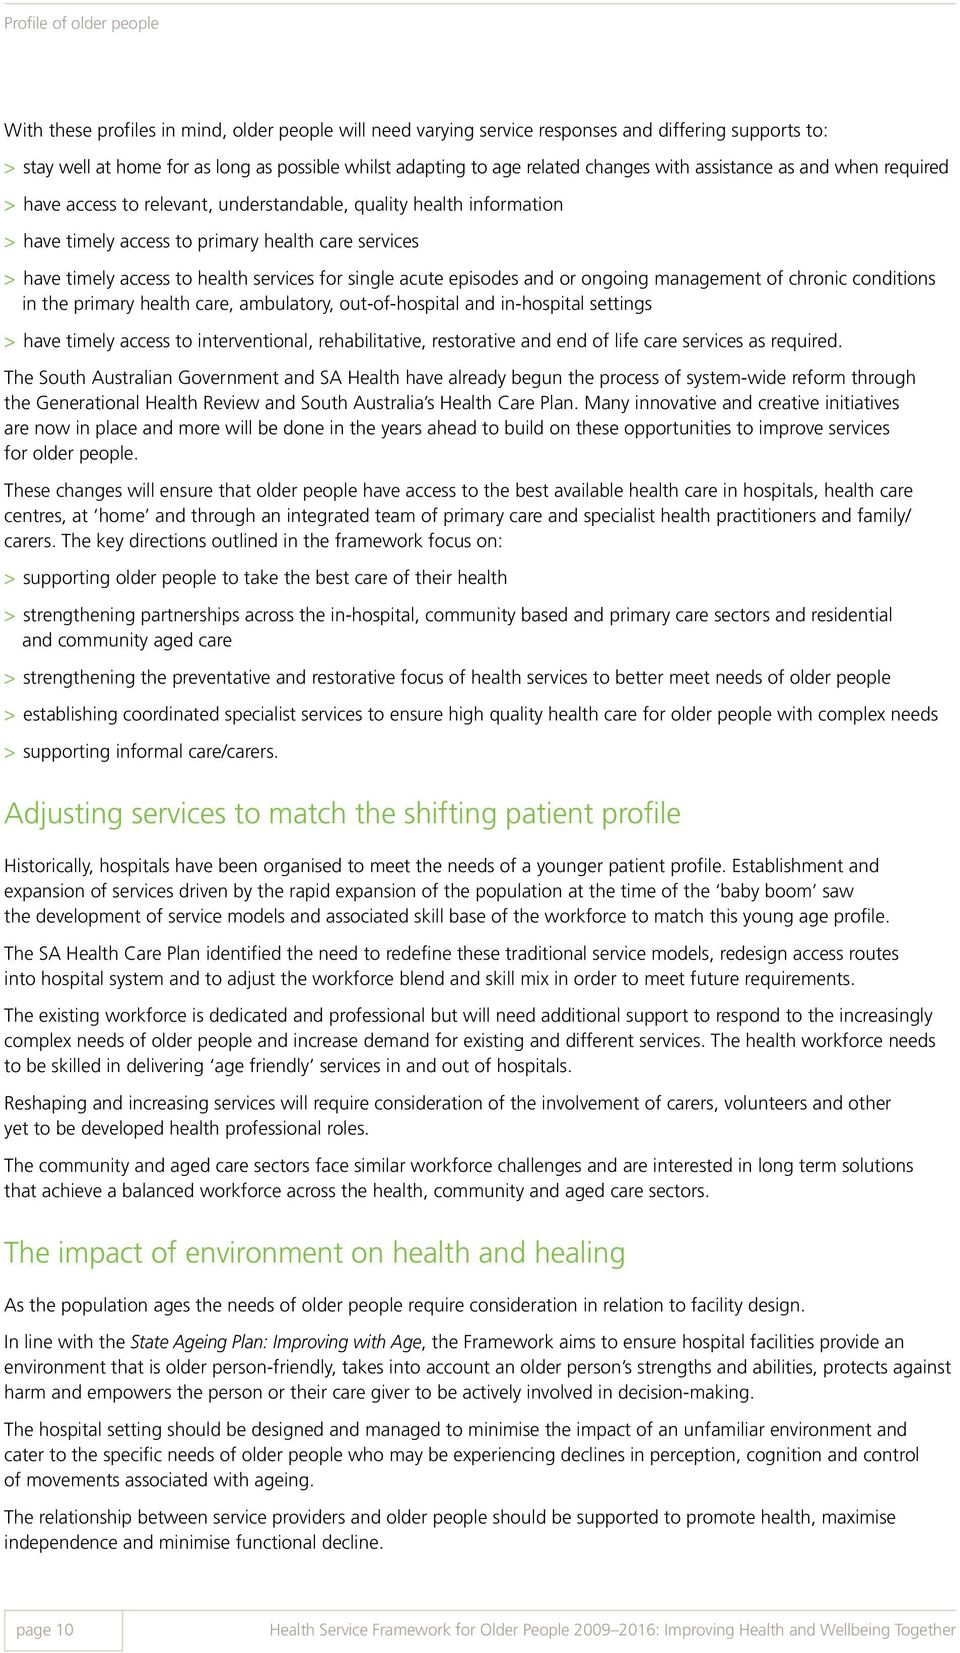 health services for single acute episodes and or ongoing management of chronic conditions in the primary health care, ambulatory, out-of-hospital and in-hospital settings > have timely access to